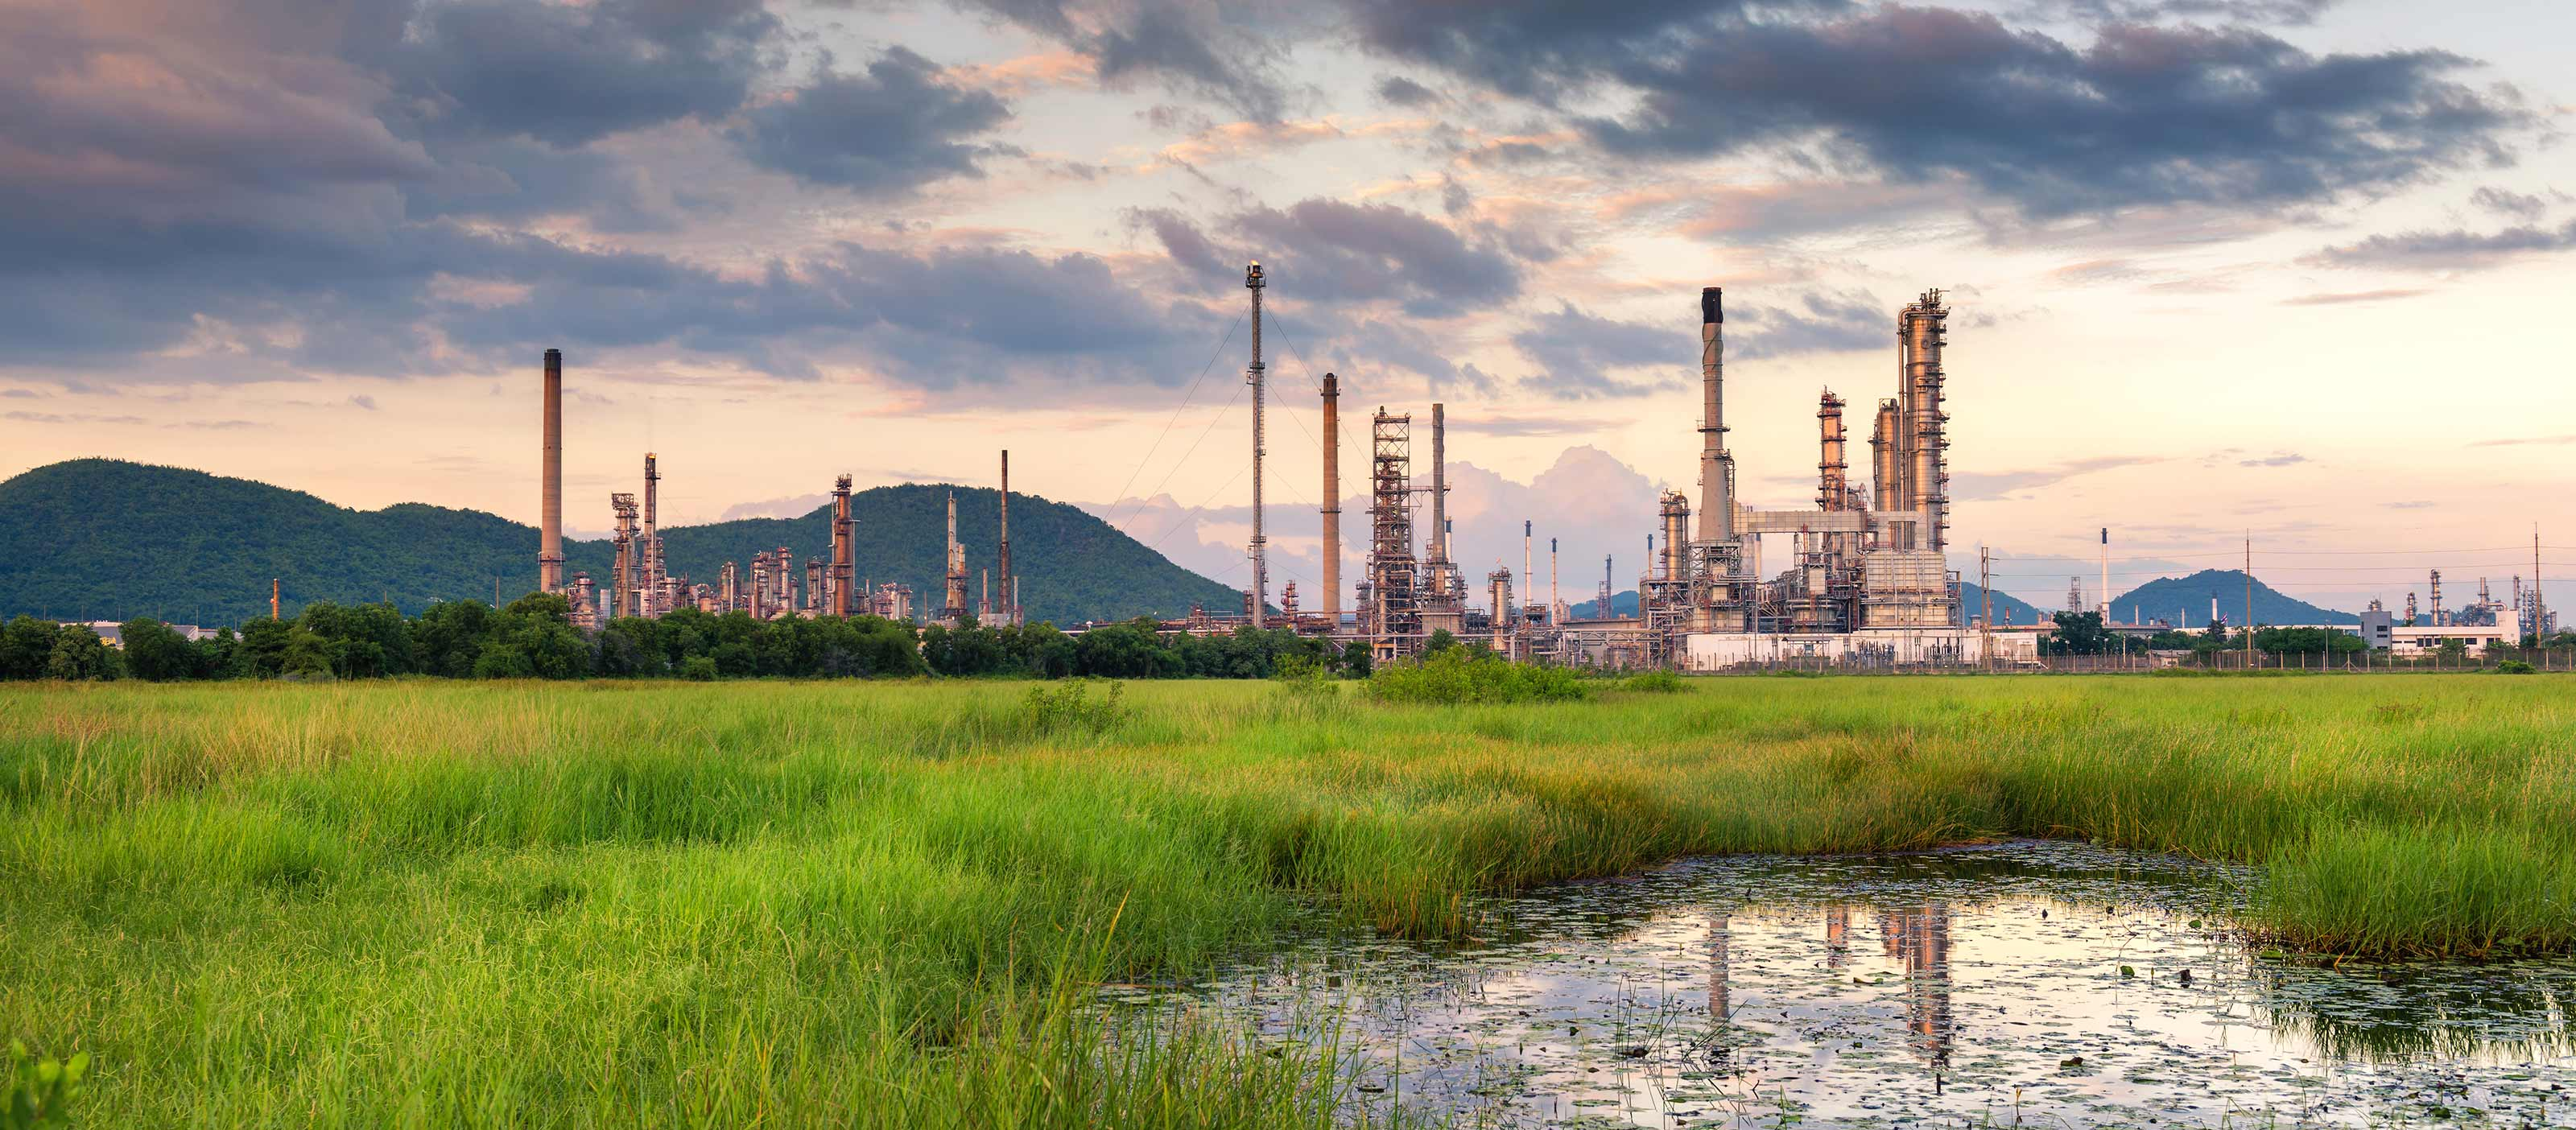 Asset performance management software can assist the oil & gas industry